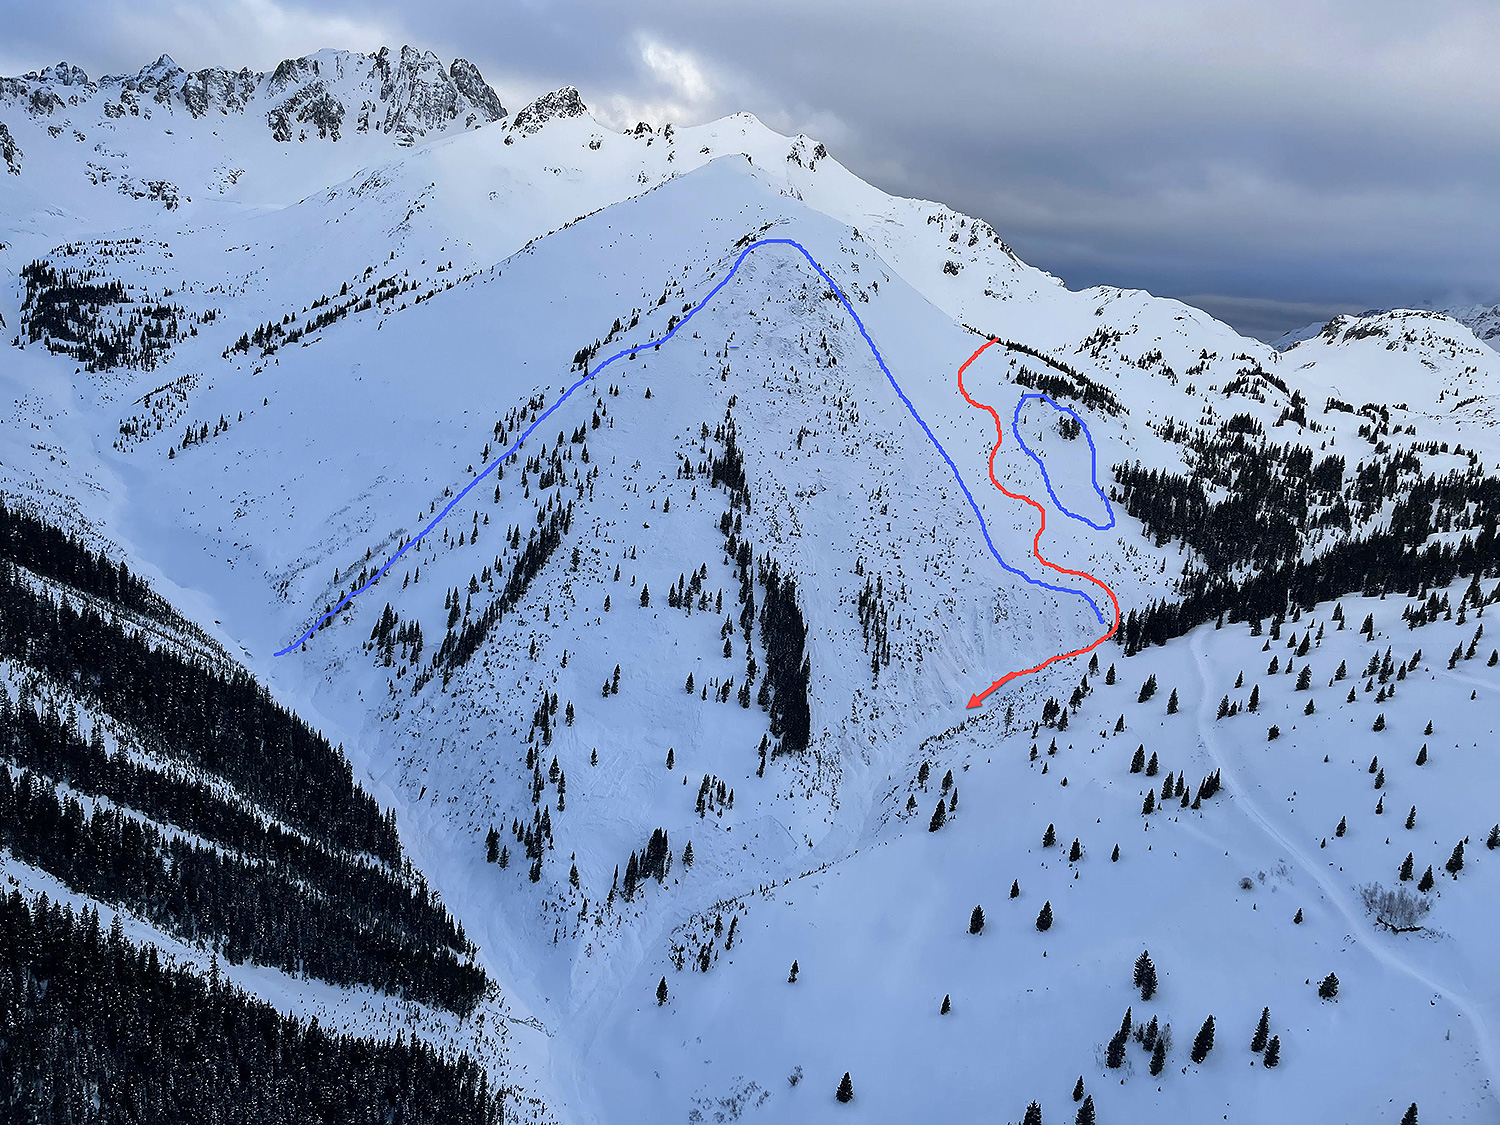 3 Skiers Missing After Getting Caught in Colorado Avalanche